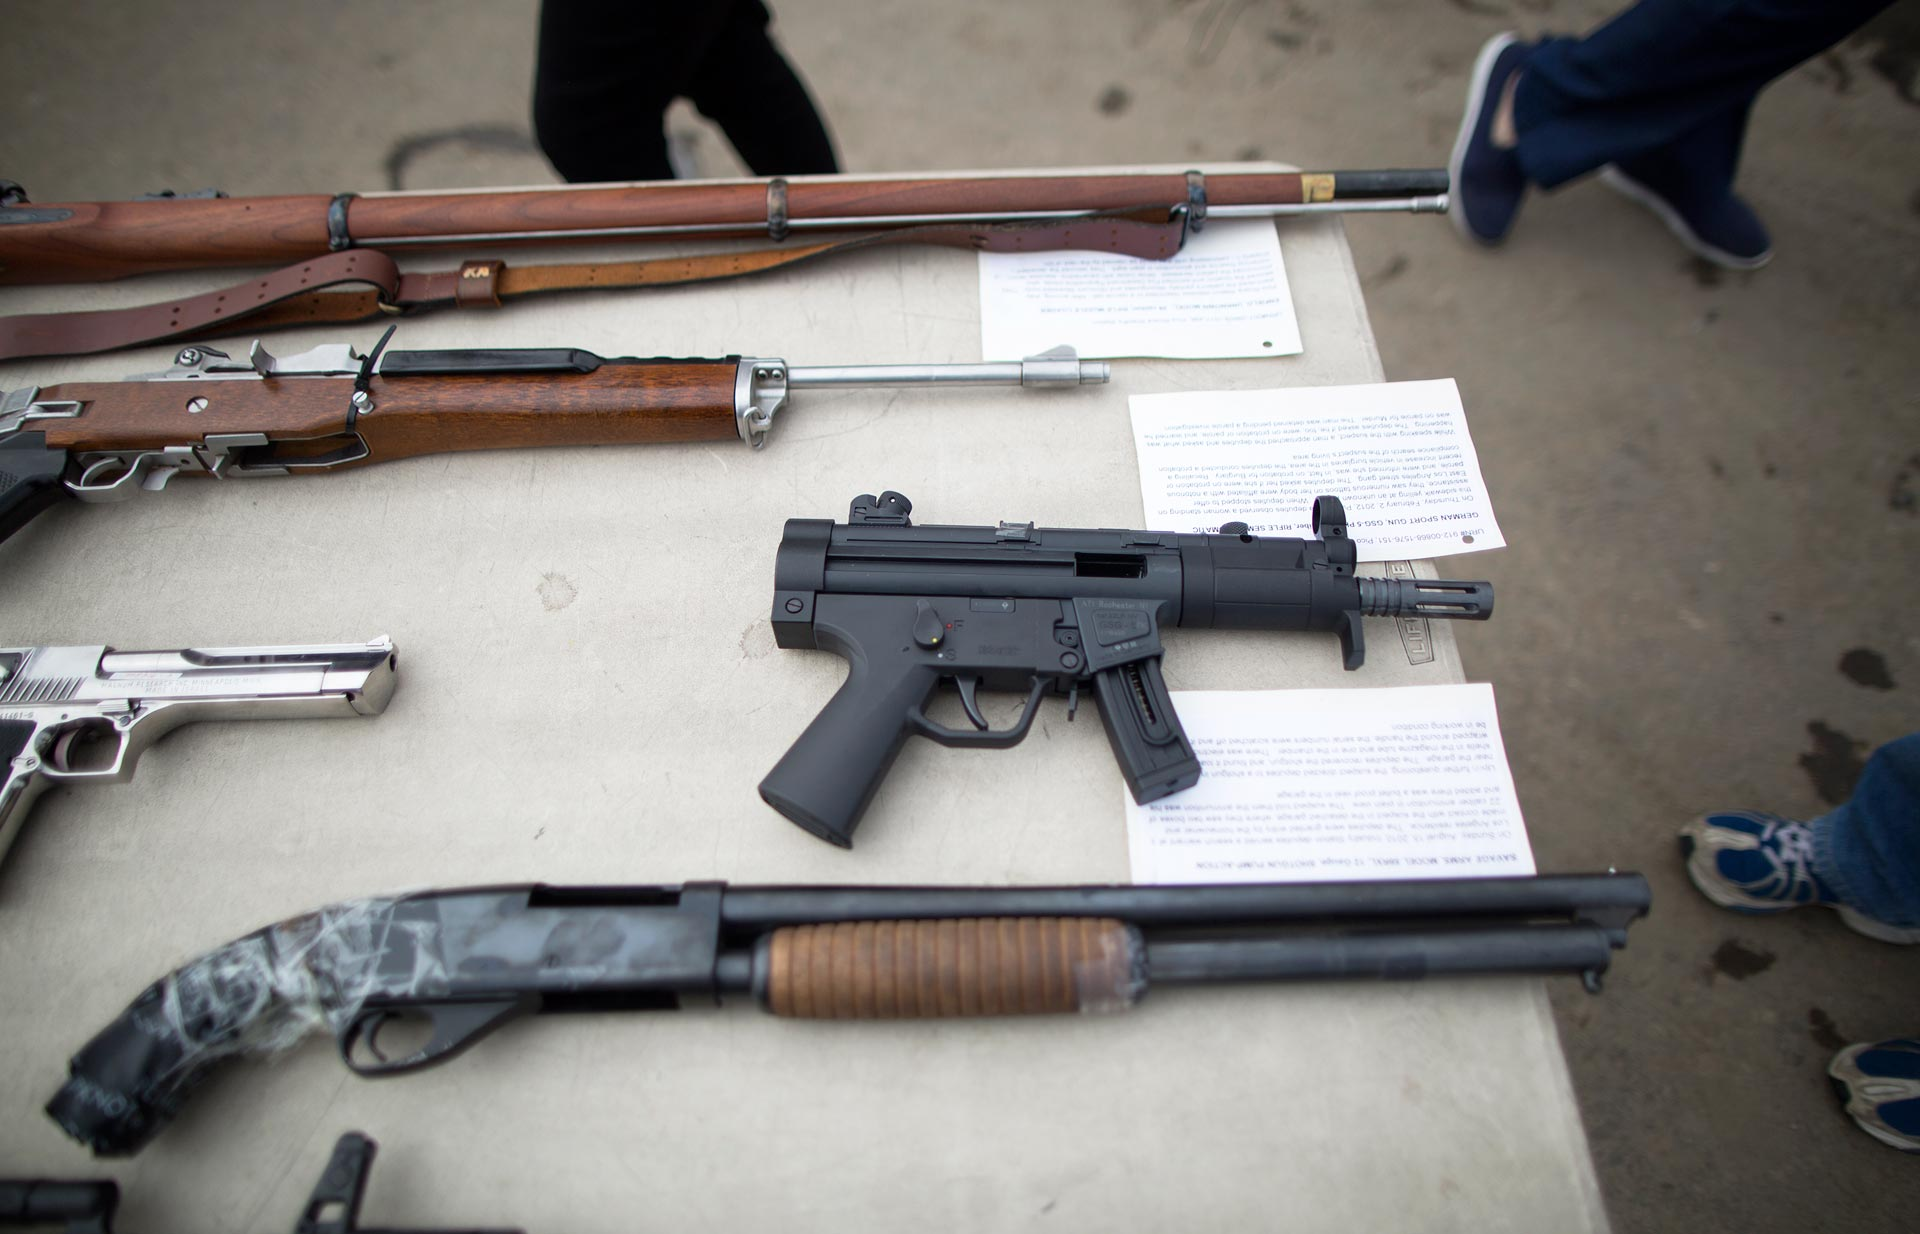 Confiscated guns are displayed prior to the destruction of approximately 3,400 guns and other weapons at the Los Angeles County Sheriffs' 22nd annual gun melt on July 6, 2015.